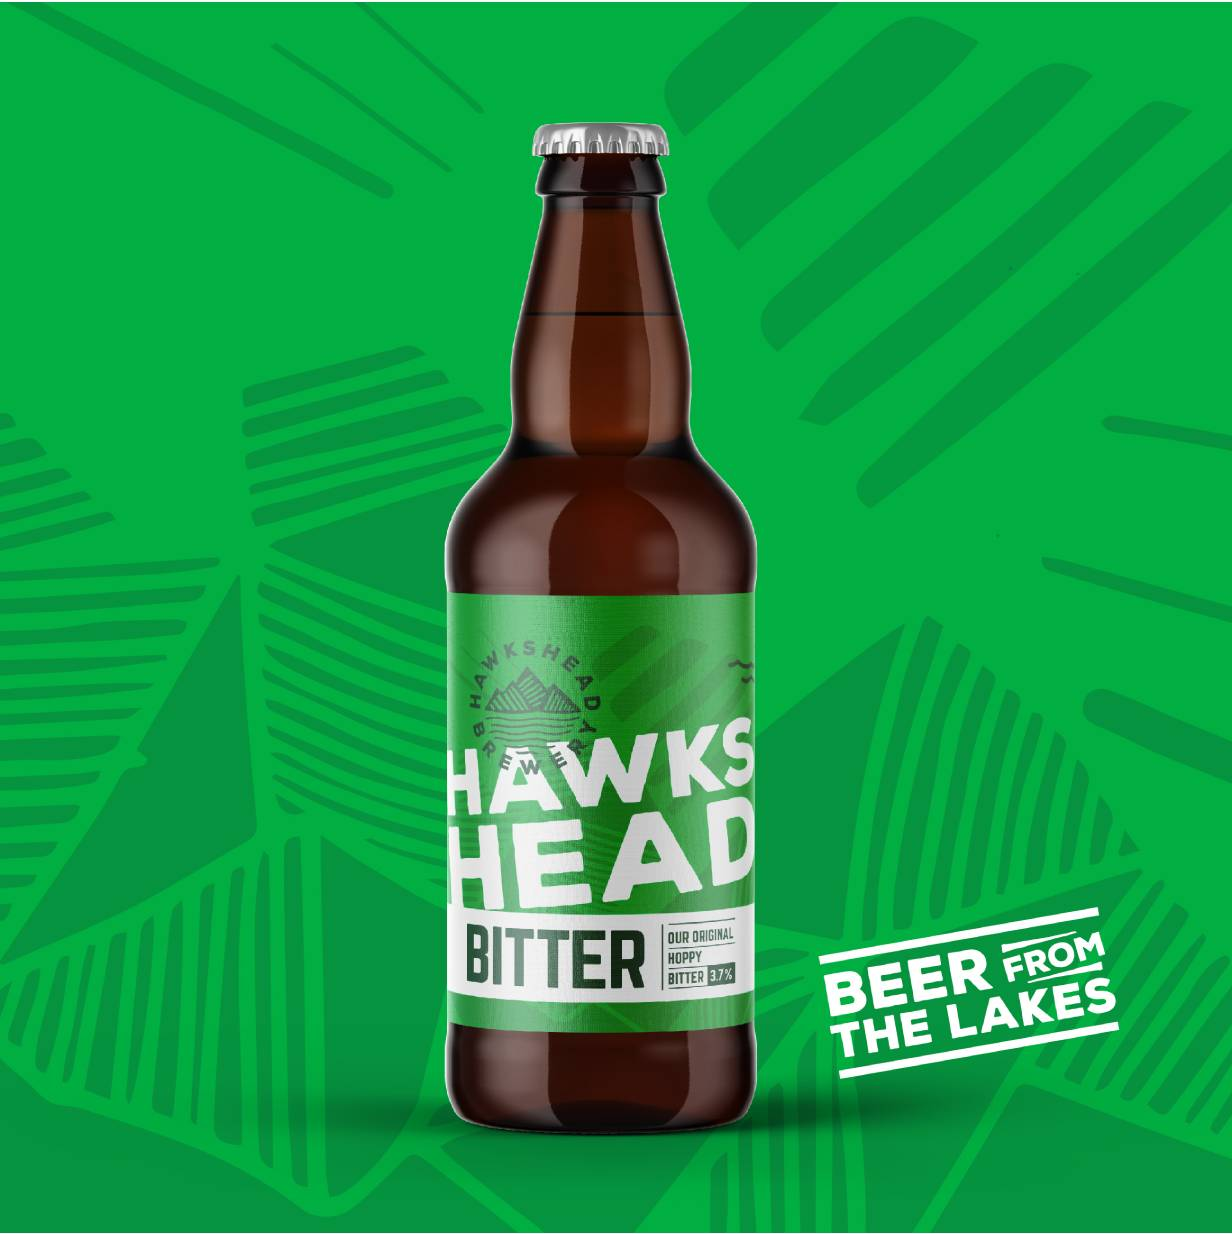 Hawkshead Brewery - Hawkshead Bitter 12x500ml Bottle Case